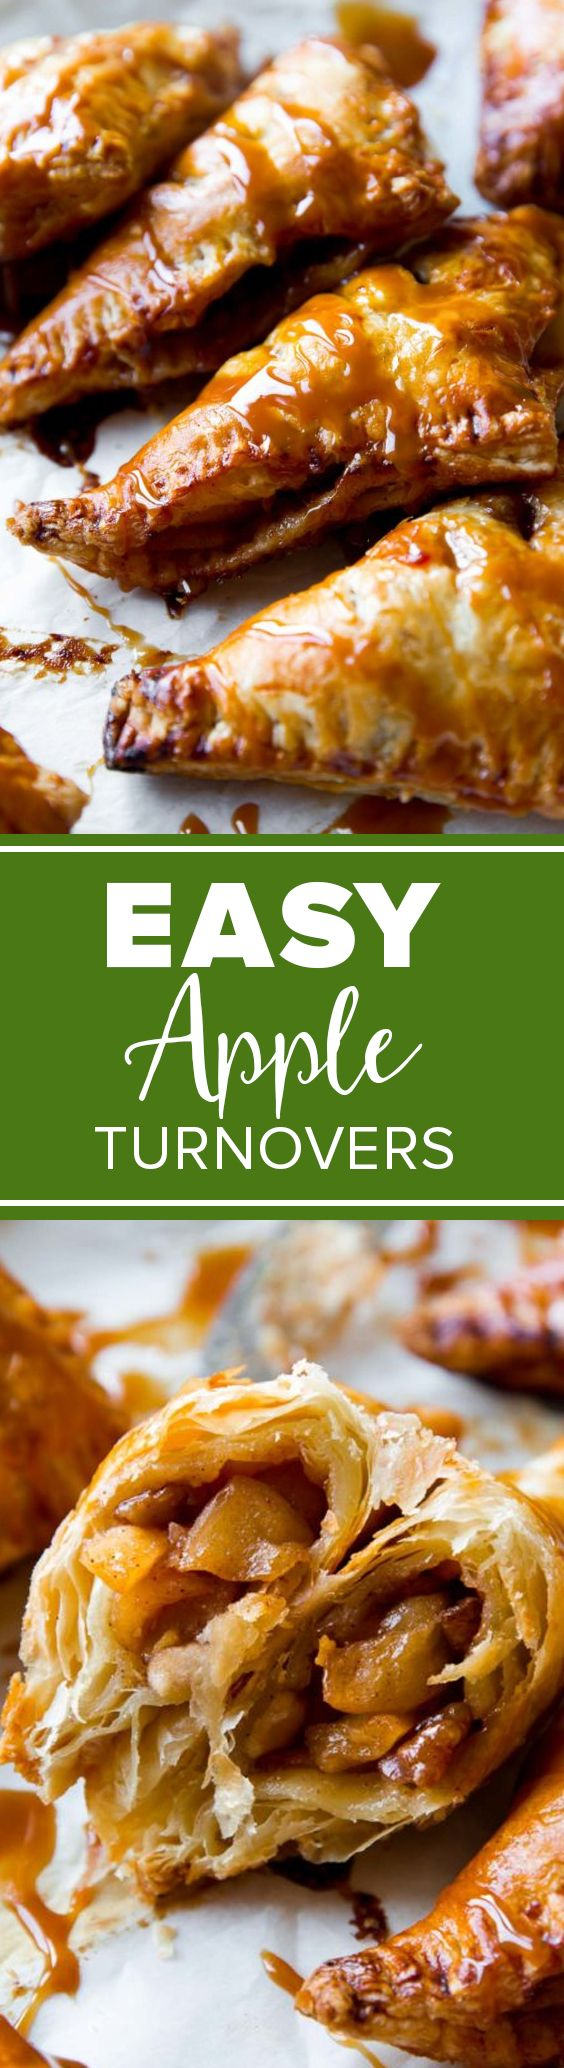 Apple filled puff pastry with caramel! Quick and easy caramel apple turnovers recipe http://sallysbakingaddiction.com/2013/09/10/caramel-apple-turnovers/